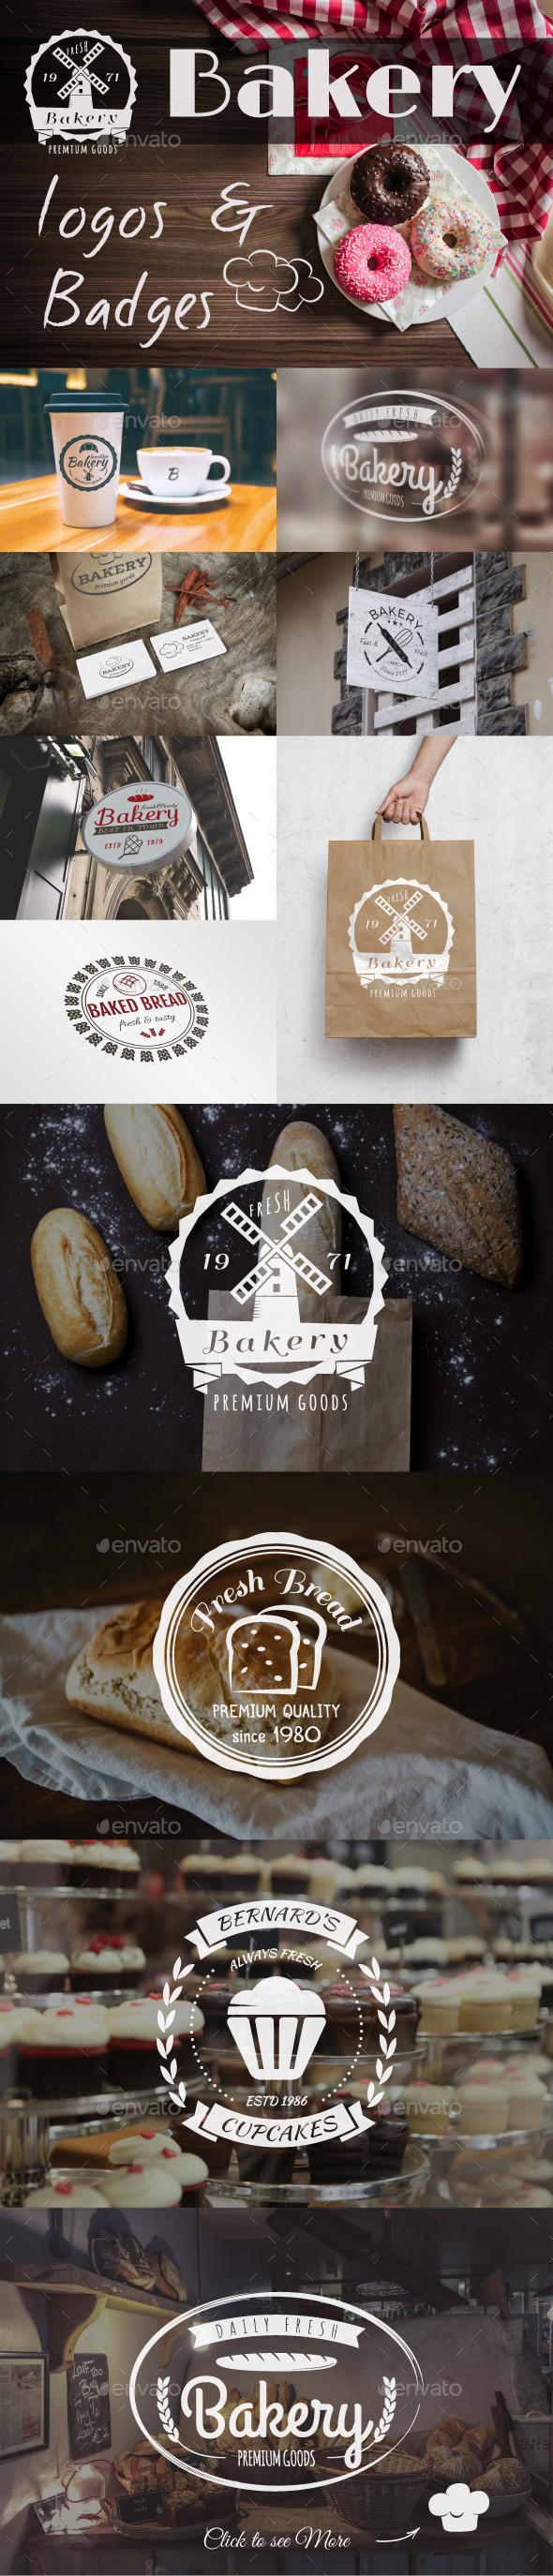 Bakery Logos & Badges